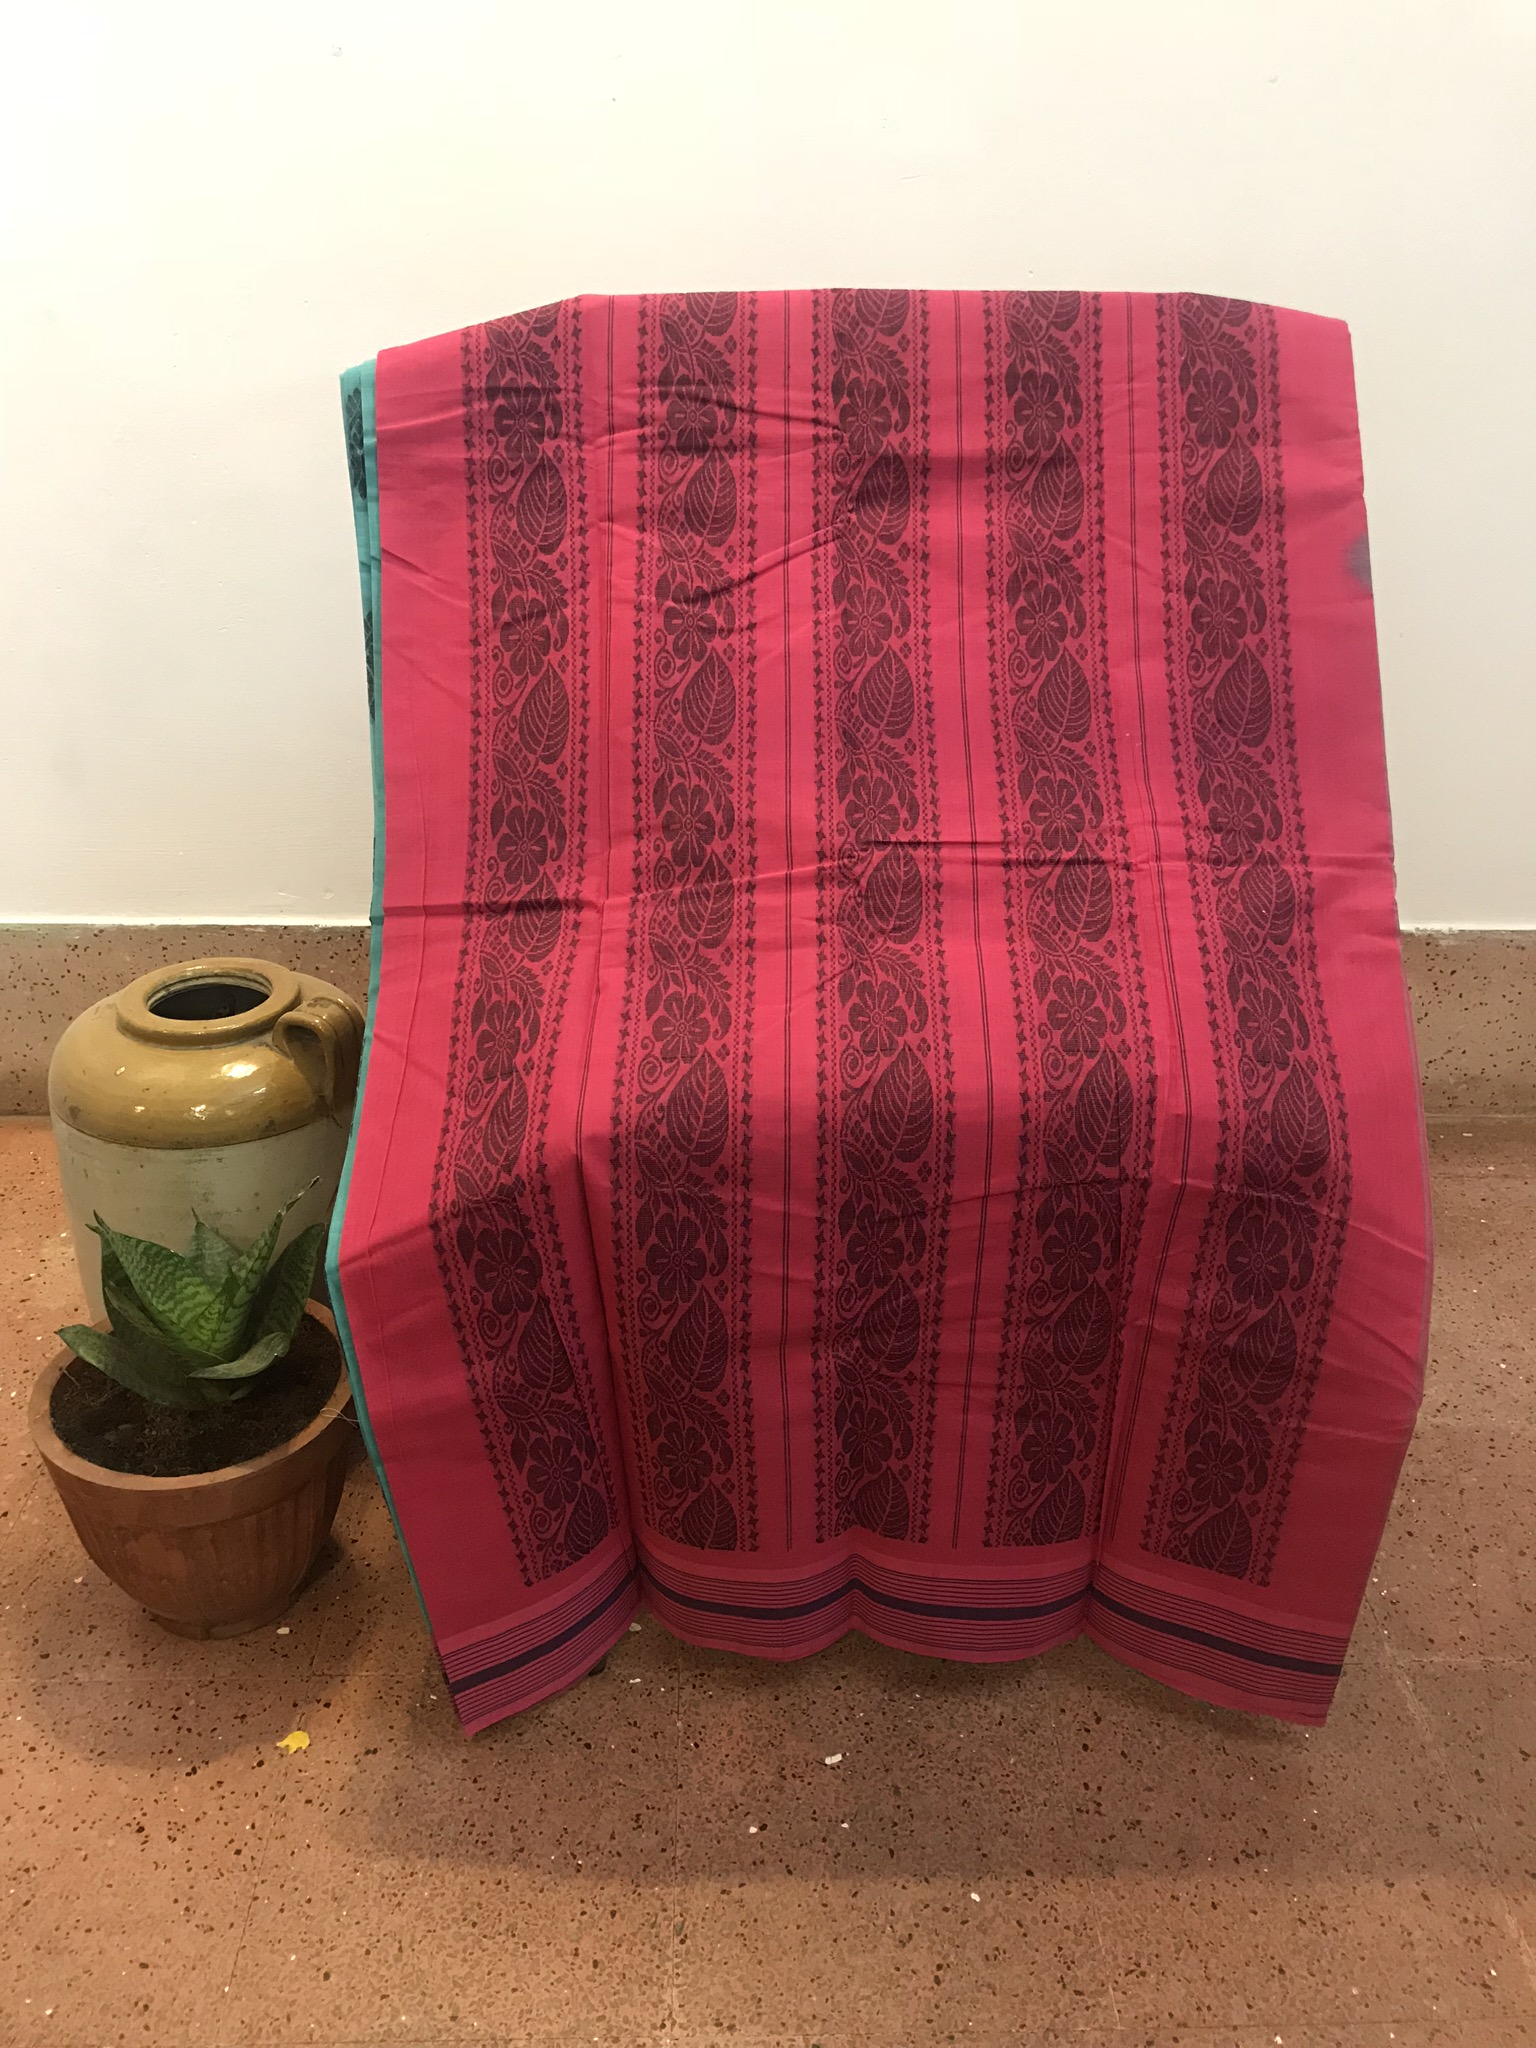 Teal and Pink Kanchi Cotton Saree (INDI-1013)